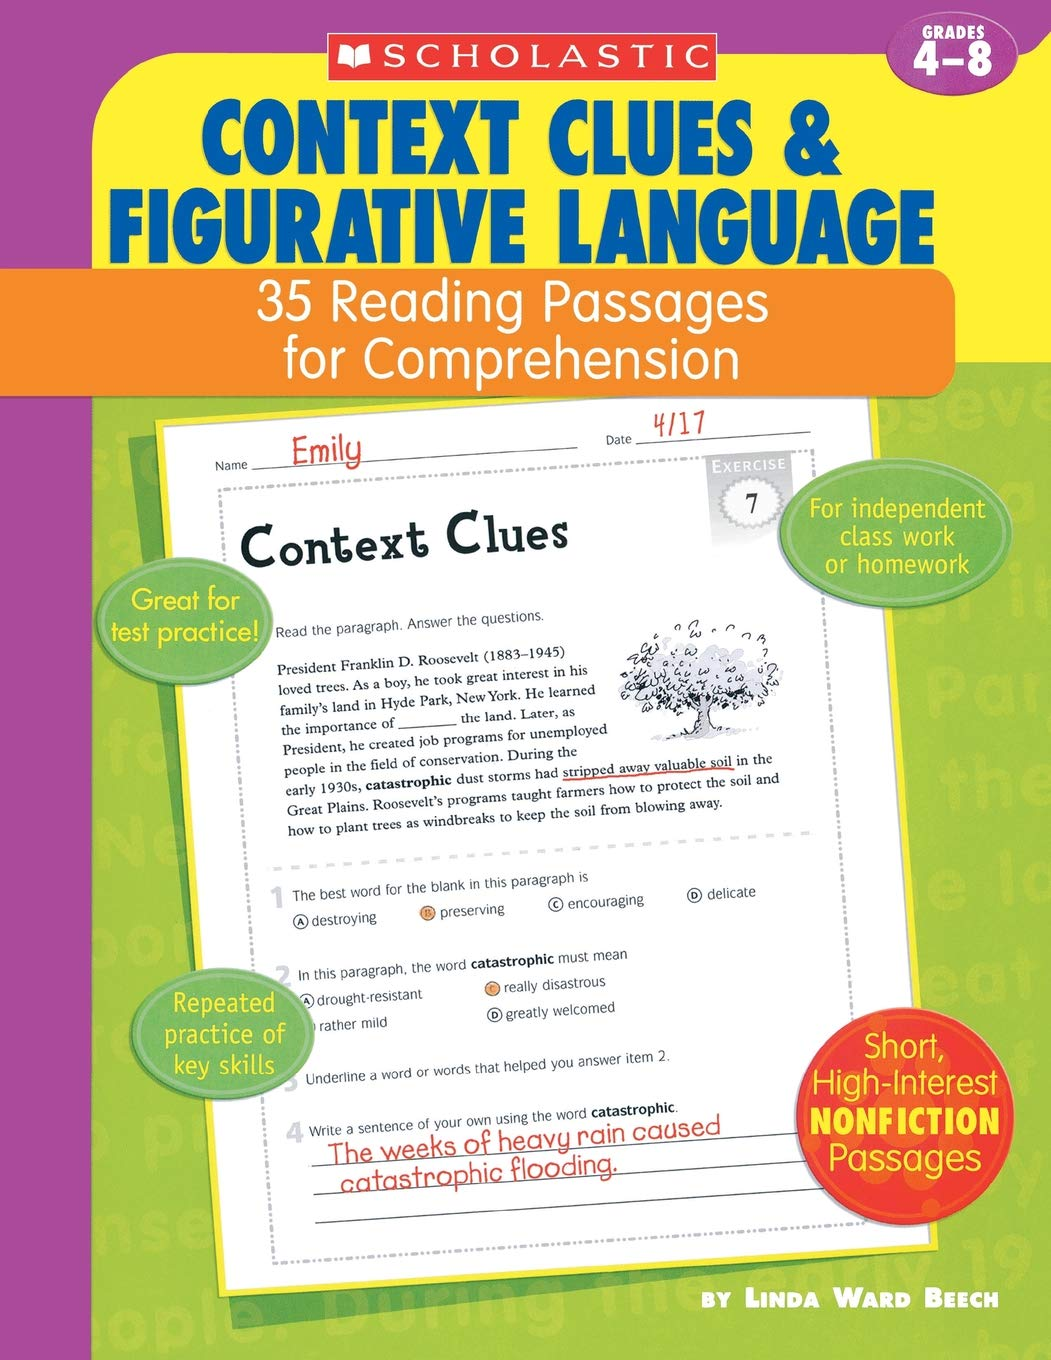 Context Clues and Figurative Language: 35 Reading Passages for